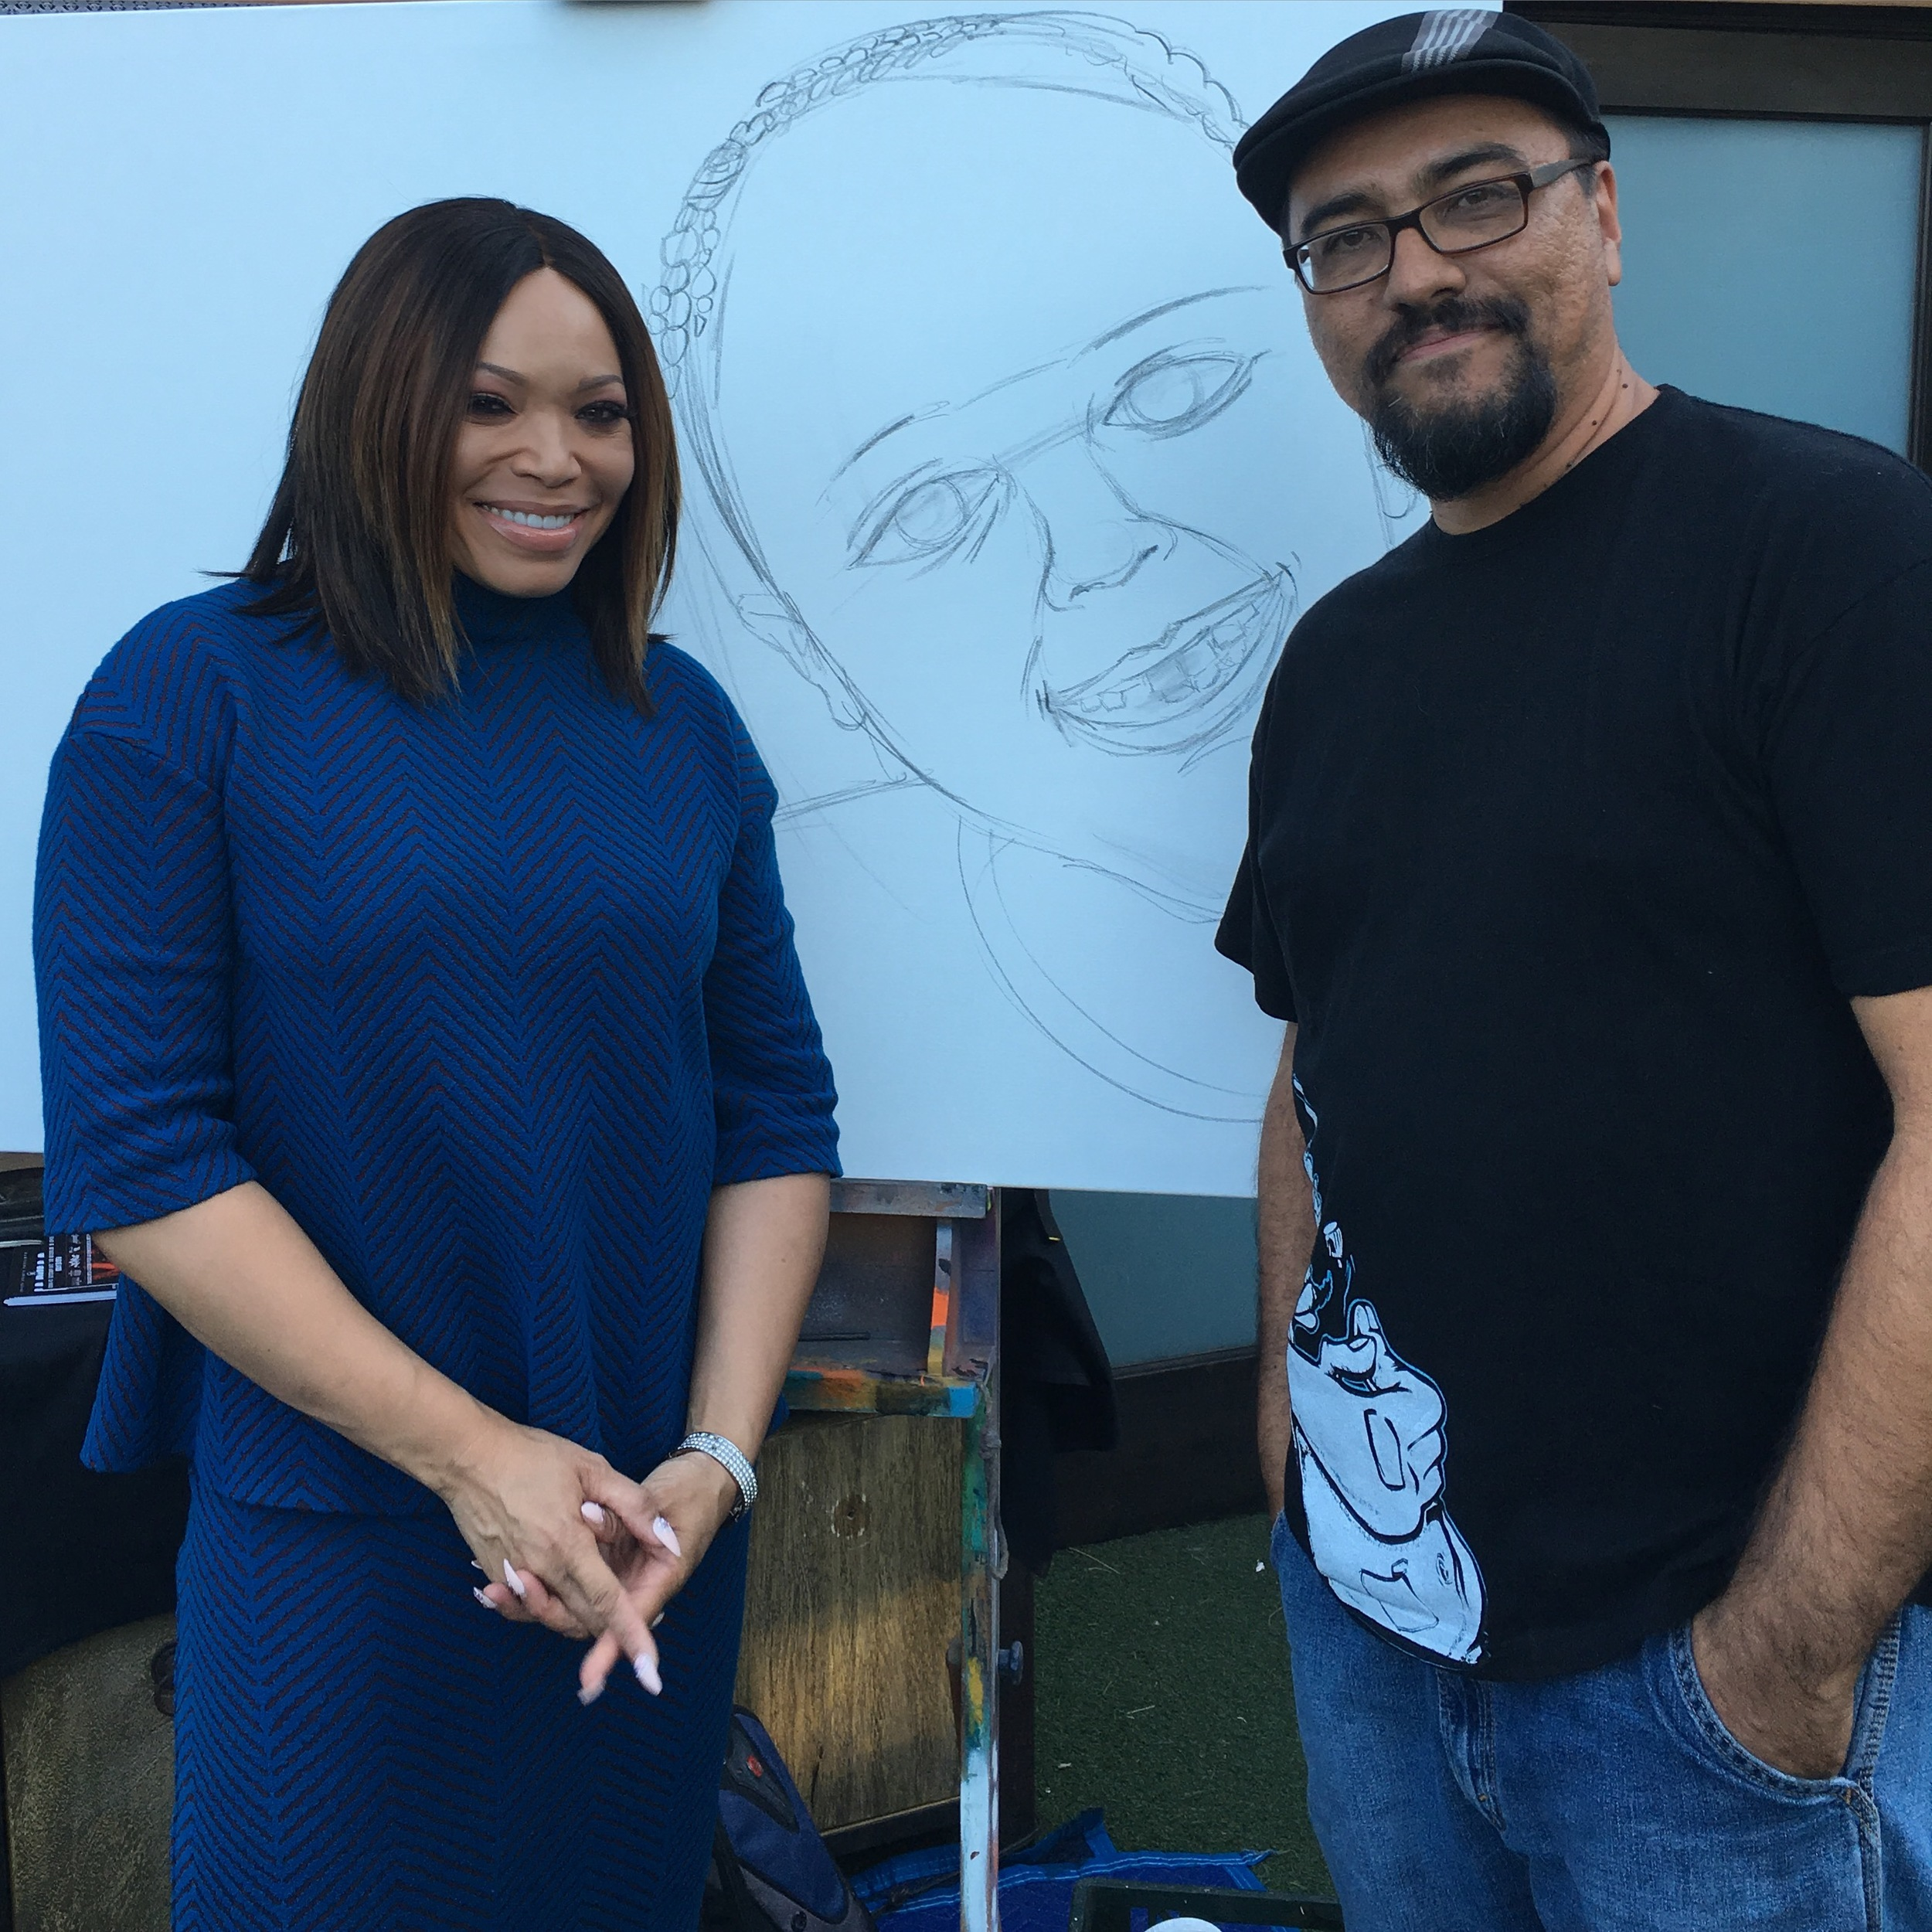 With the talented Tisha Campbell Martin